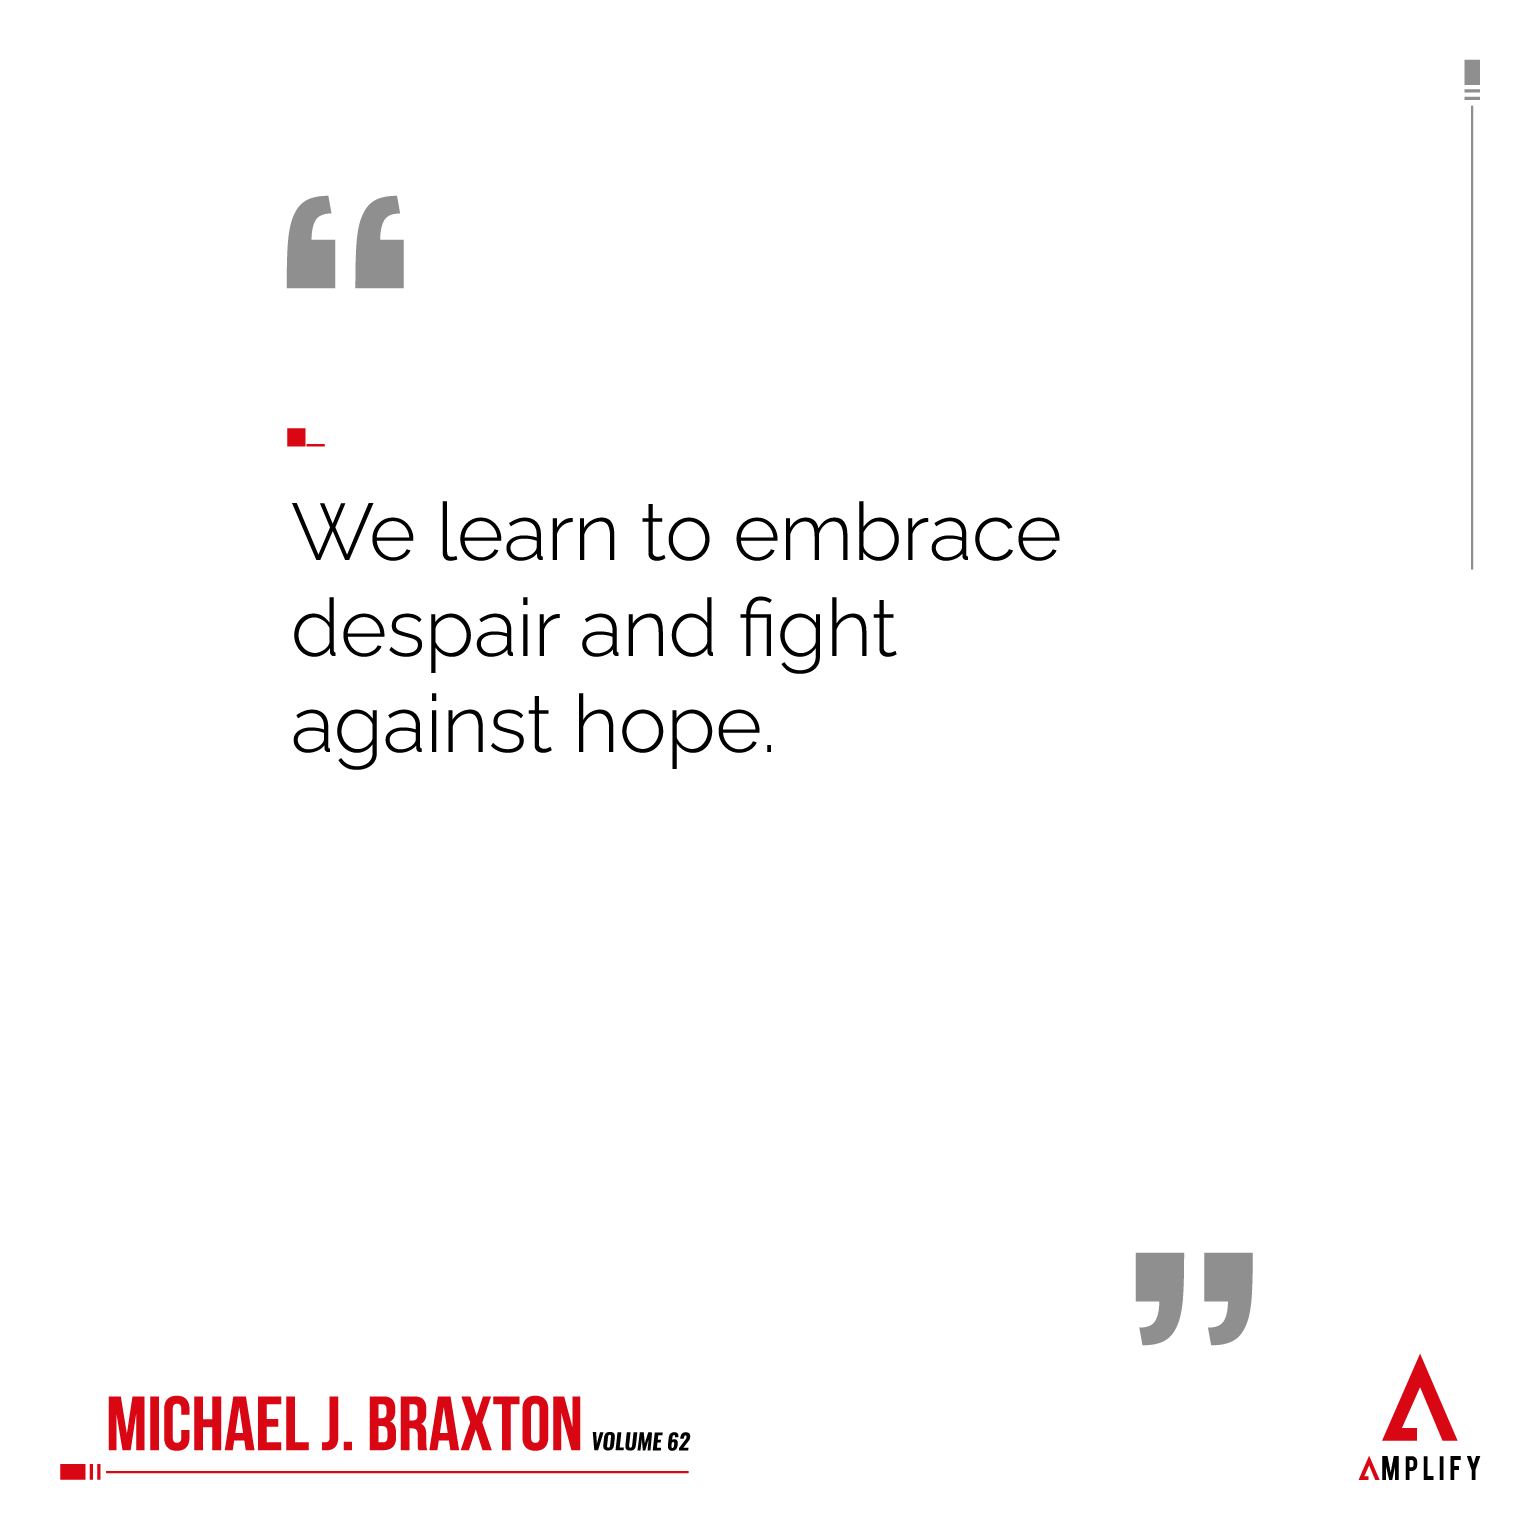 Quote: We learn to embrace despair and fight against hope.